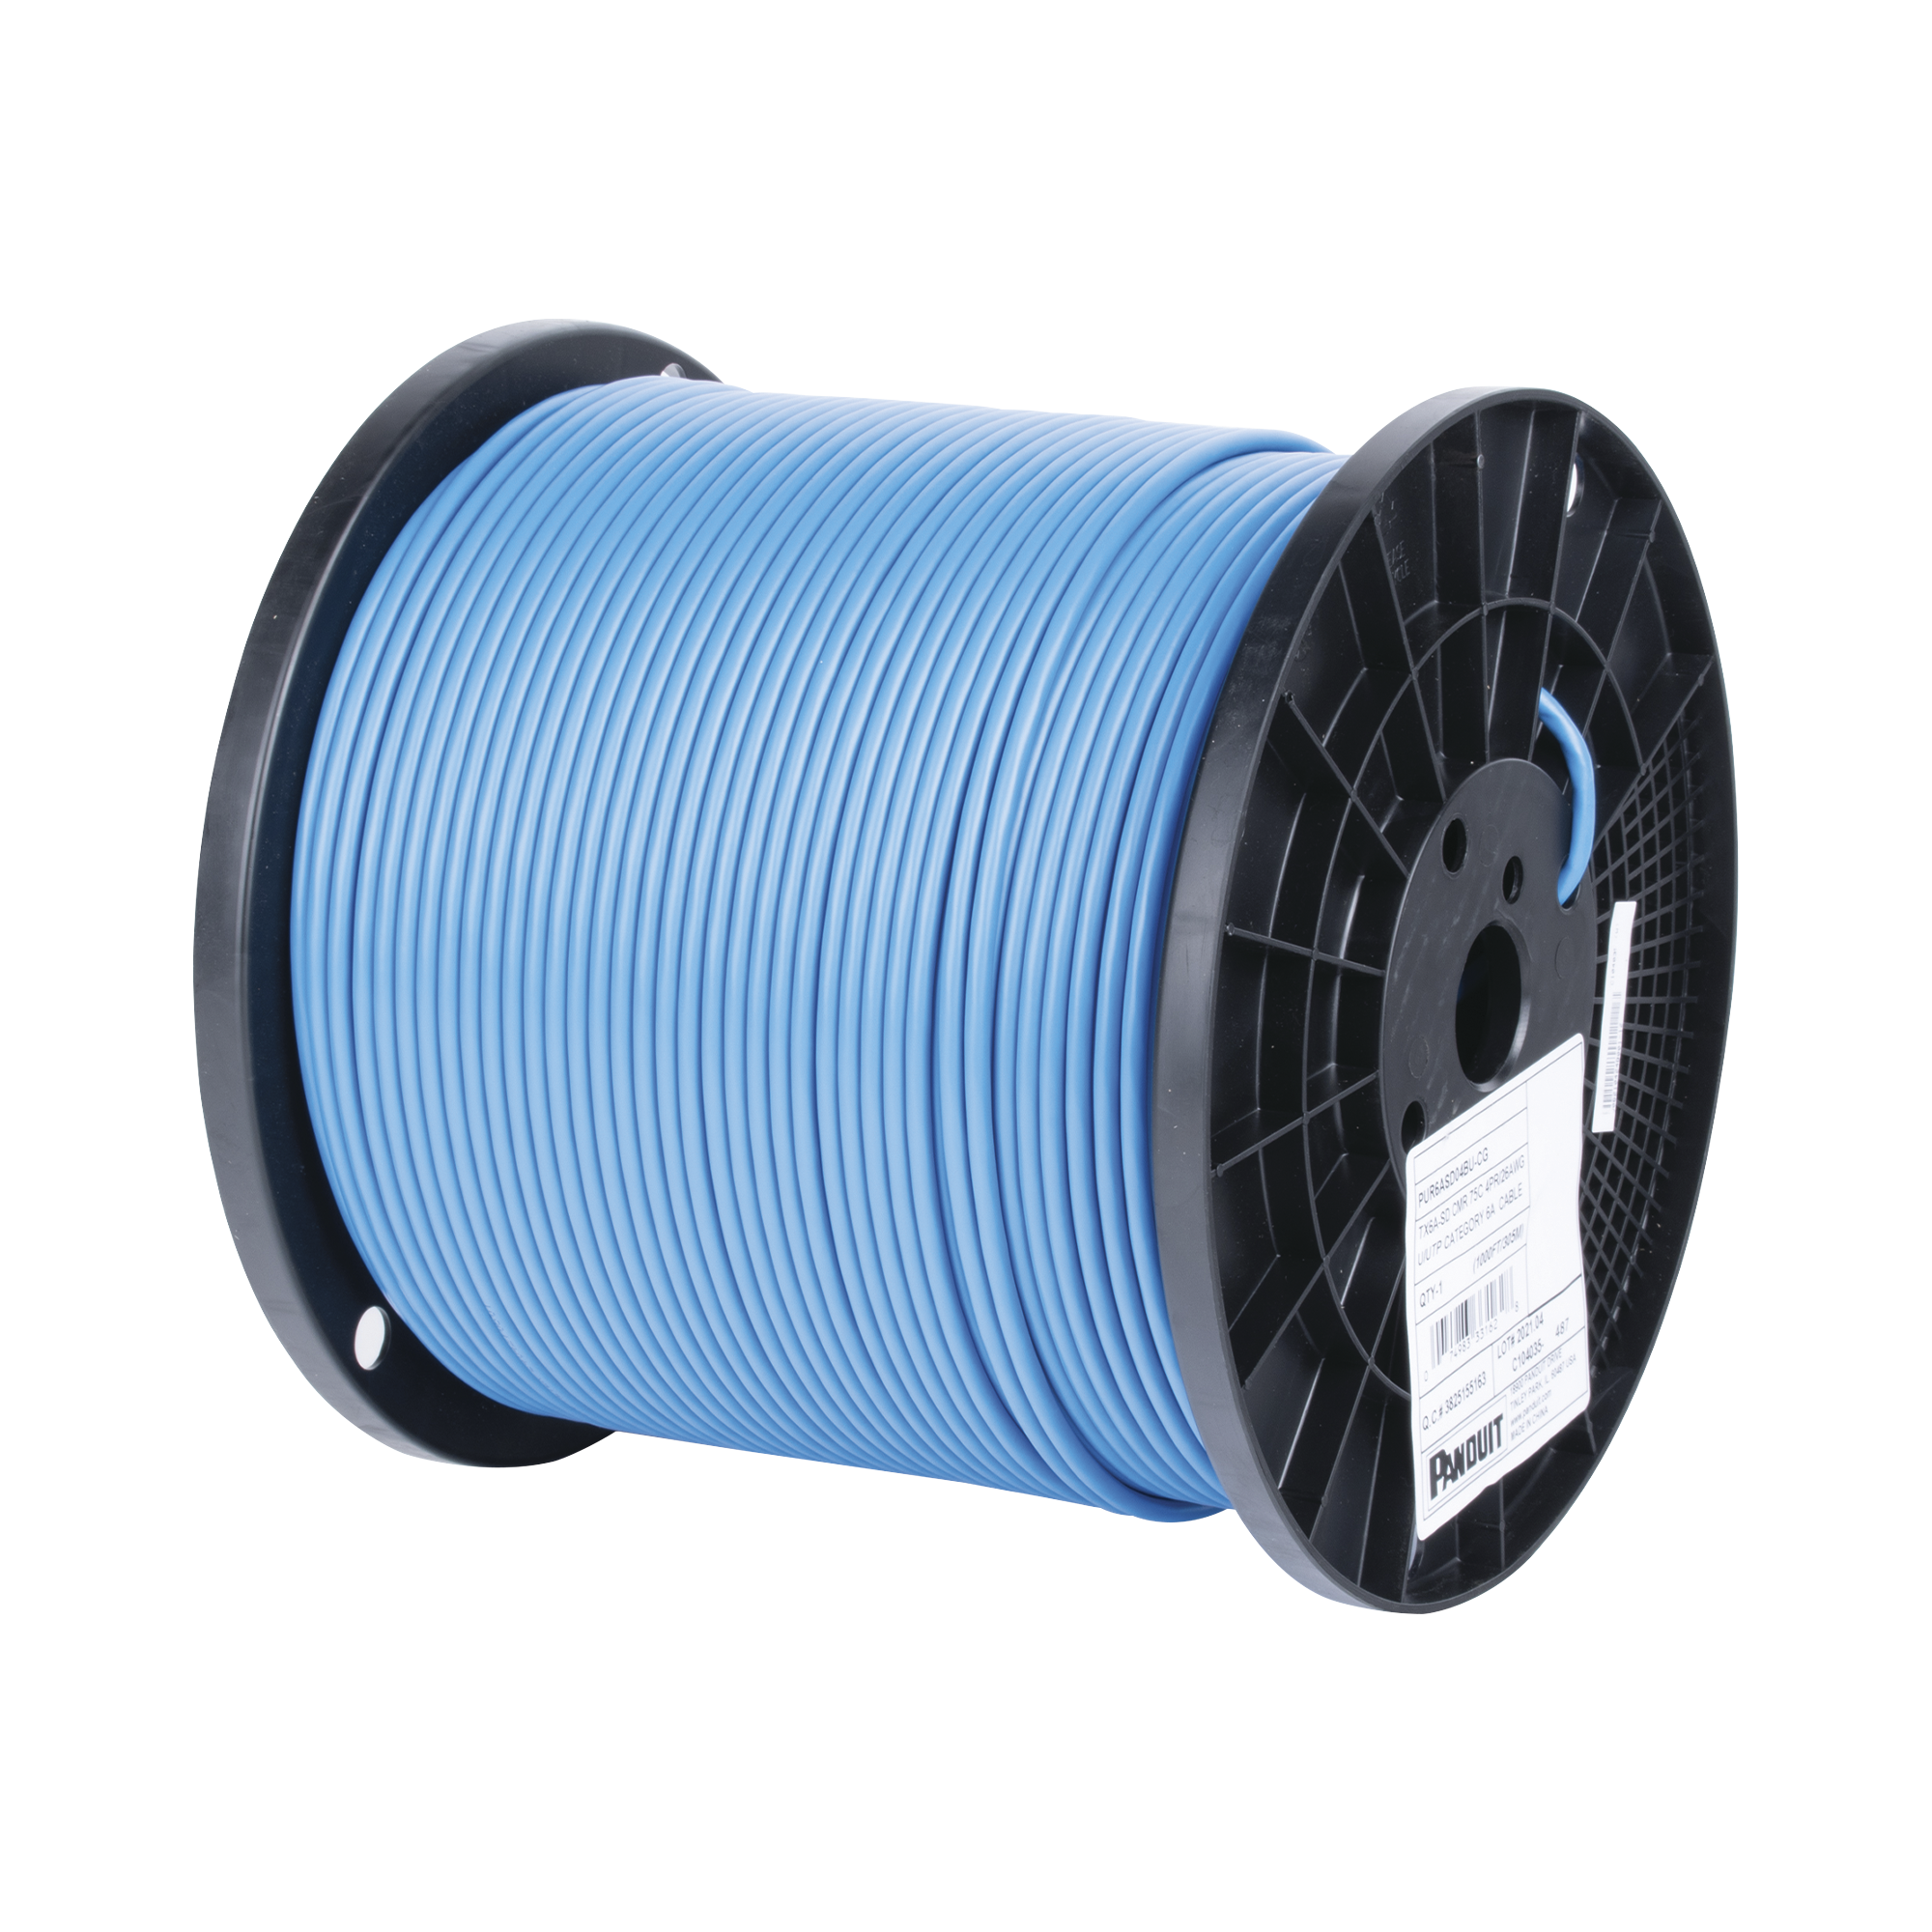 Bobina de Cable UTP de 4 Pares, MaTriX, Cat6A, 26 AWG, CMR (Riser), Color Azul, 305m